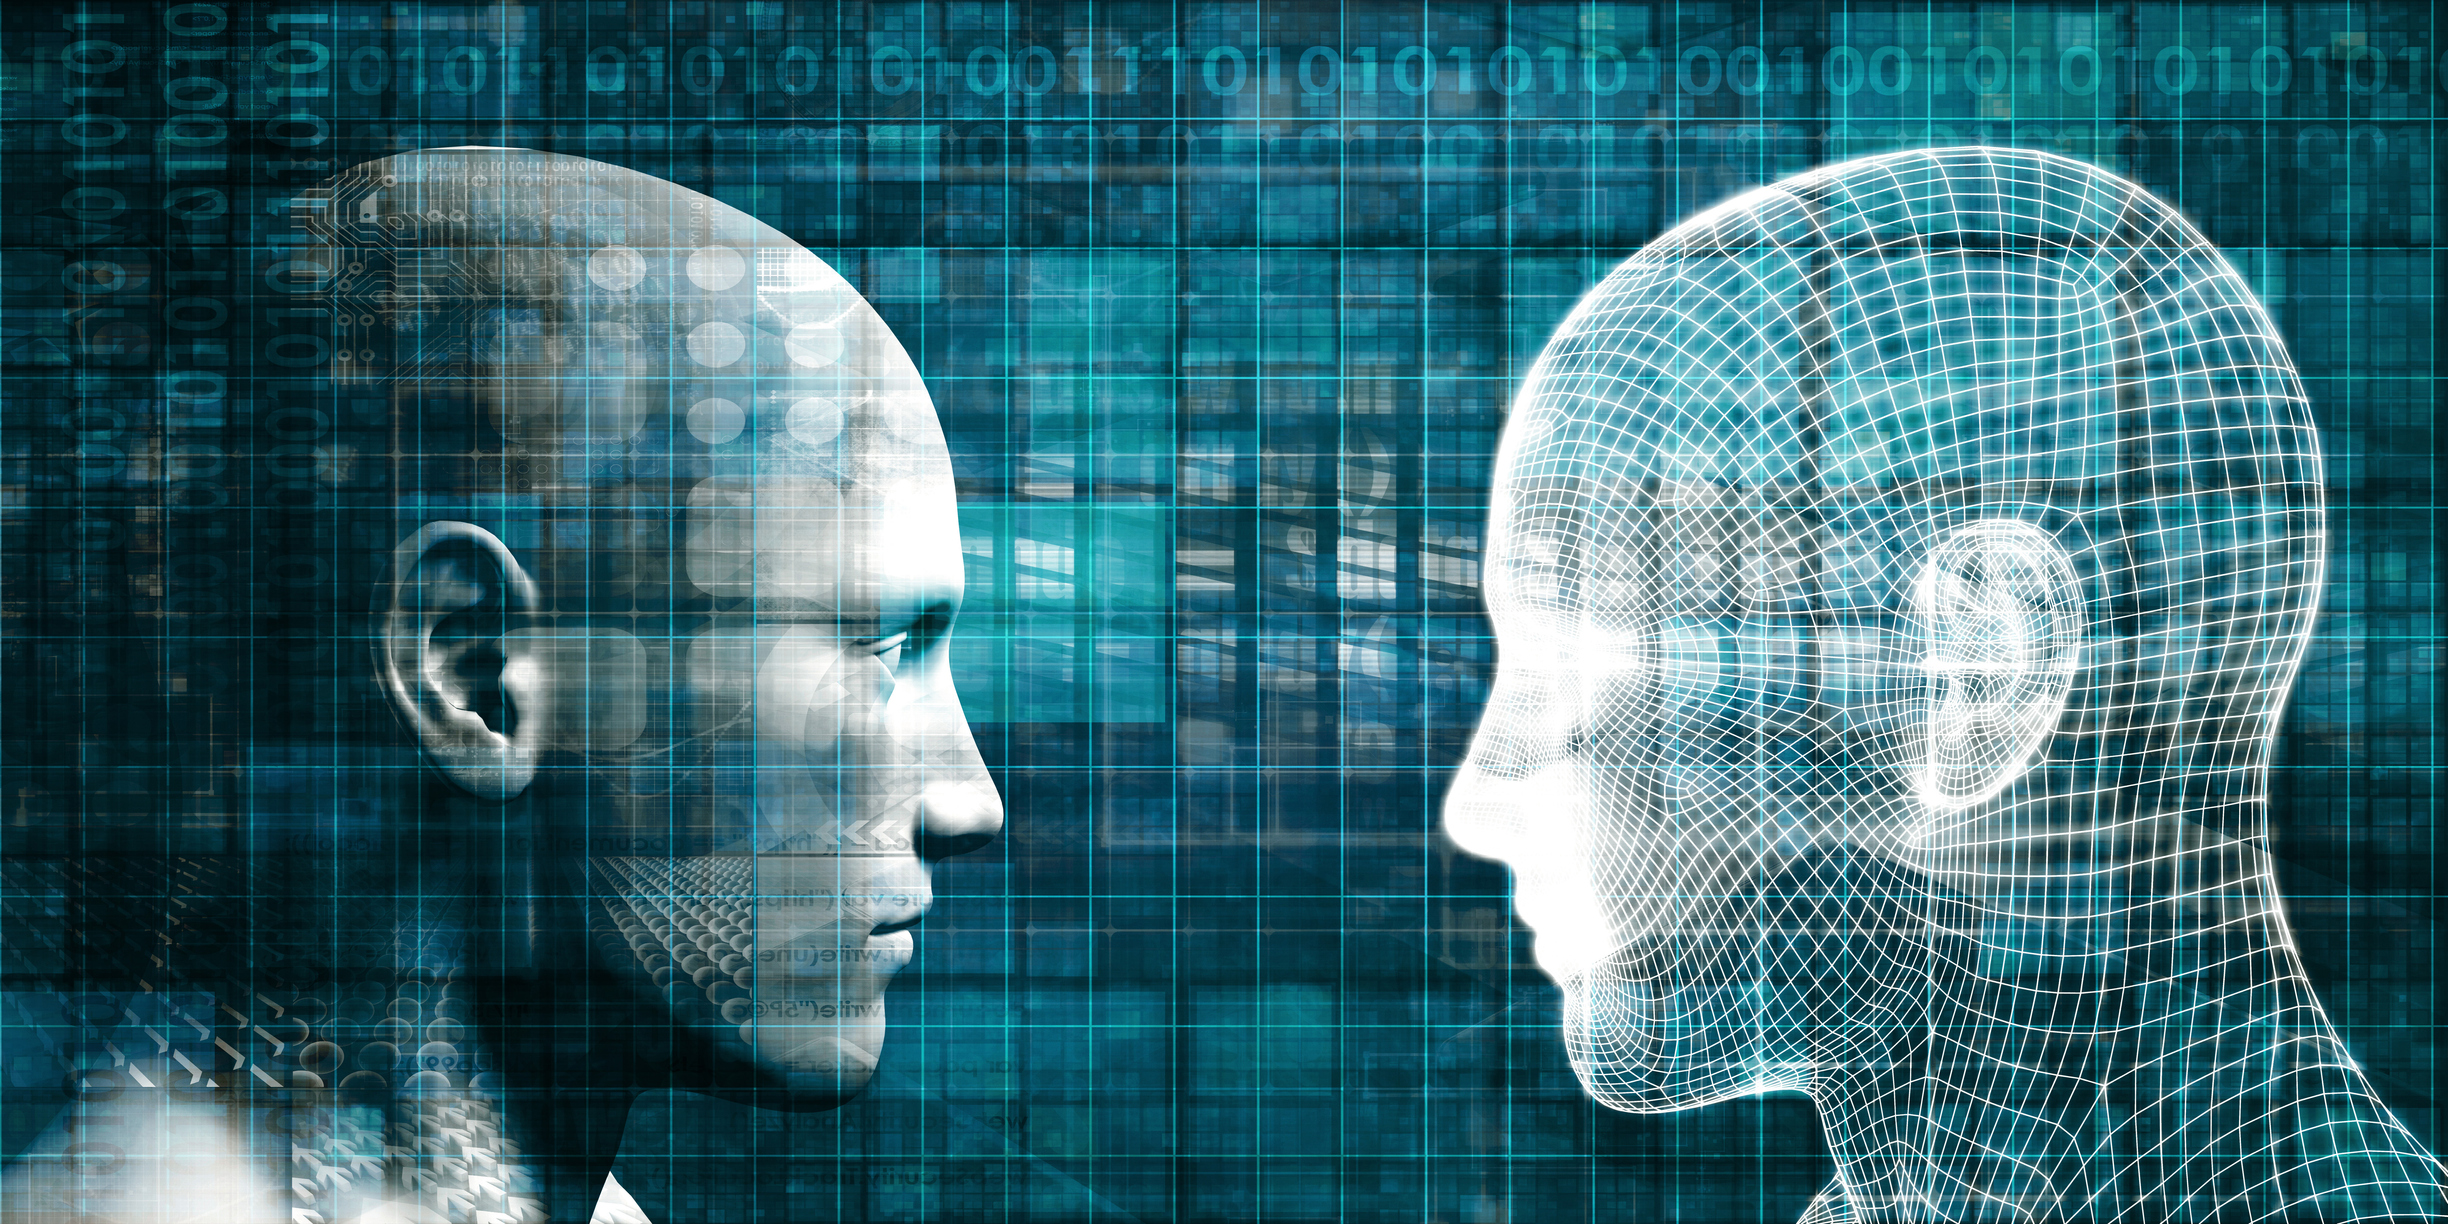 DeepMind scientist calls for ethical AI as Google faces ongoing backlash